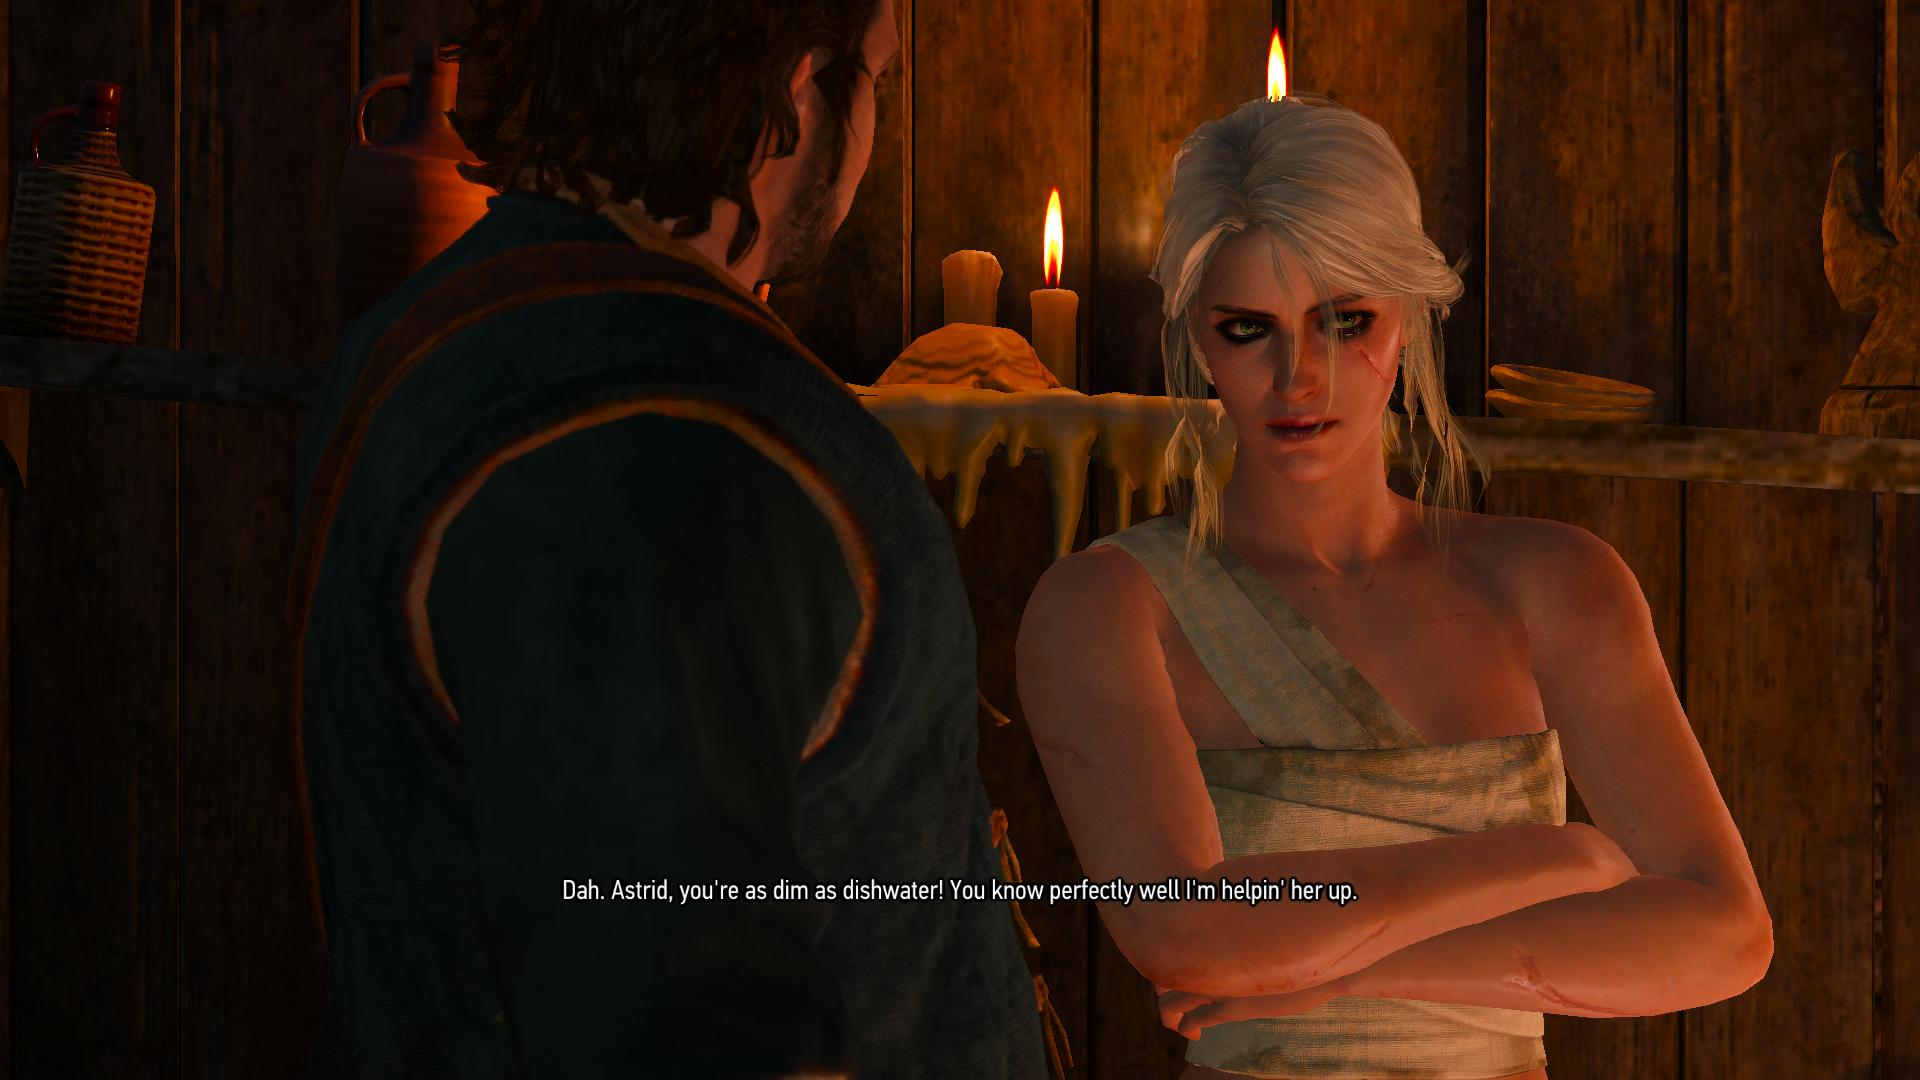 Gud witcher 3 porn hate